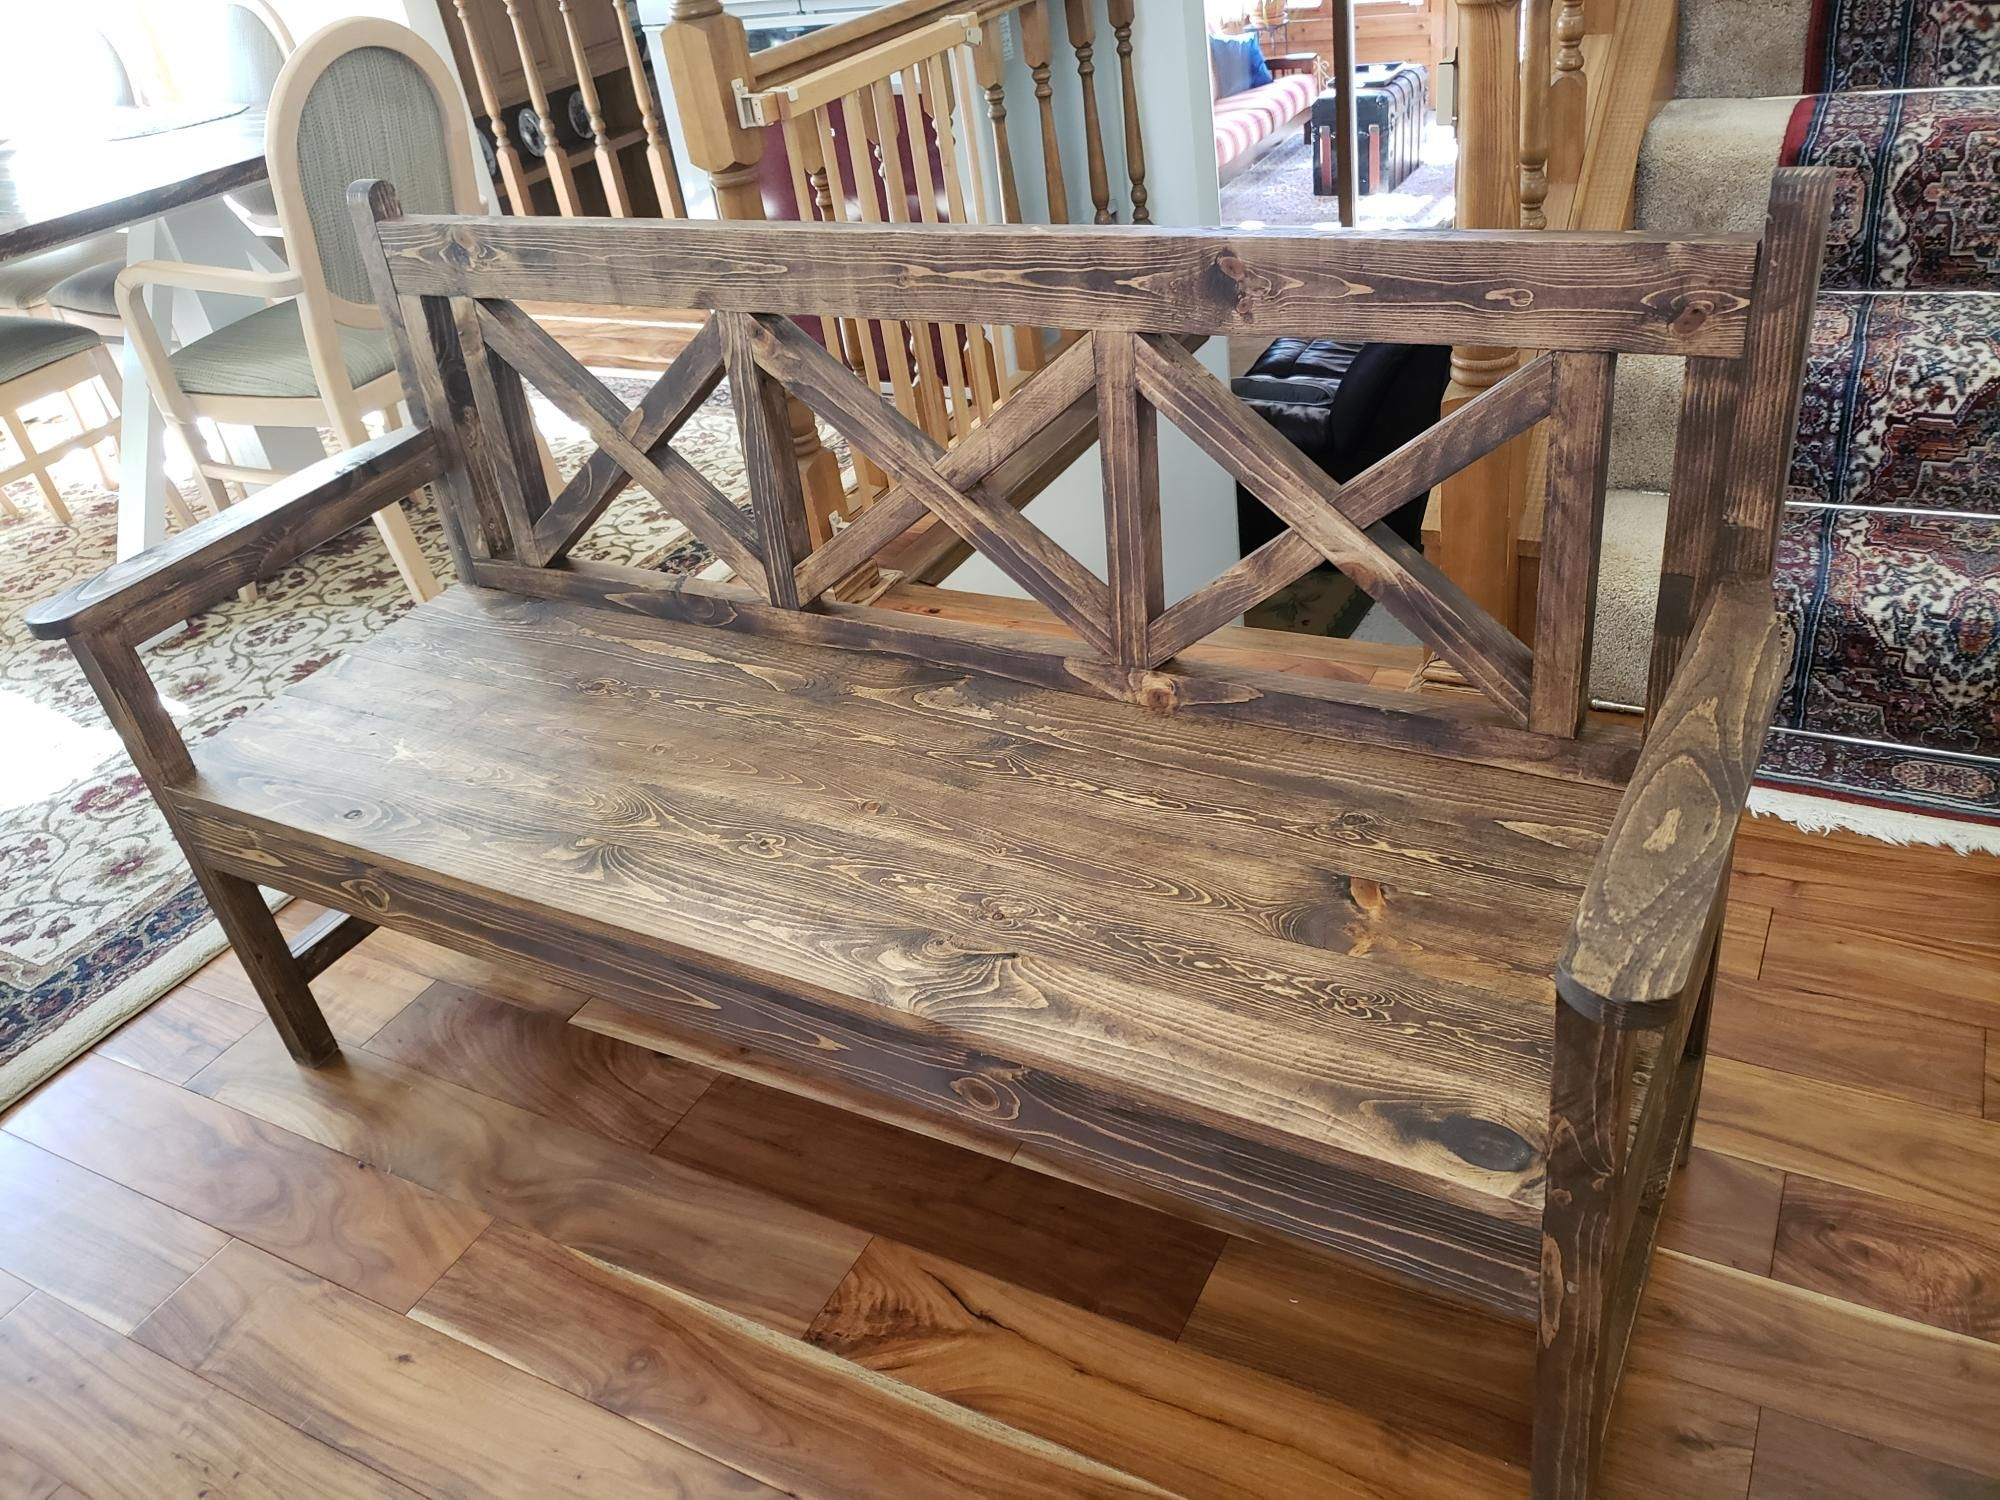 Farmhouse Dining Bench With Back Support 3 Seats Version Ana White Dining Bench With Back Farmhouse Dining Benches Rustic Bench Seat